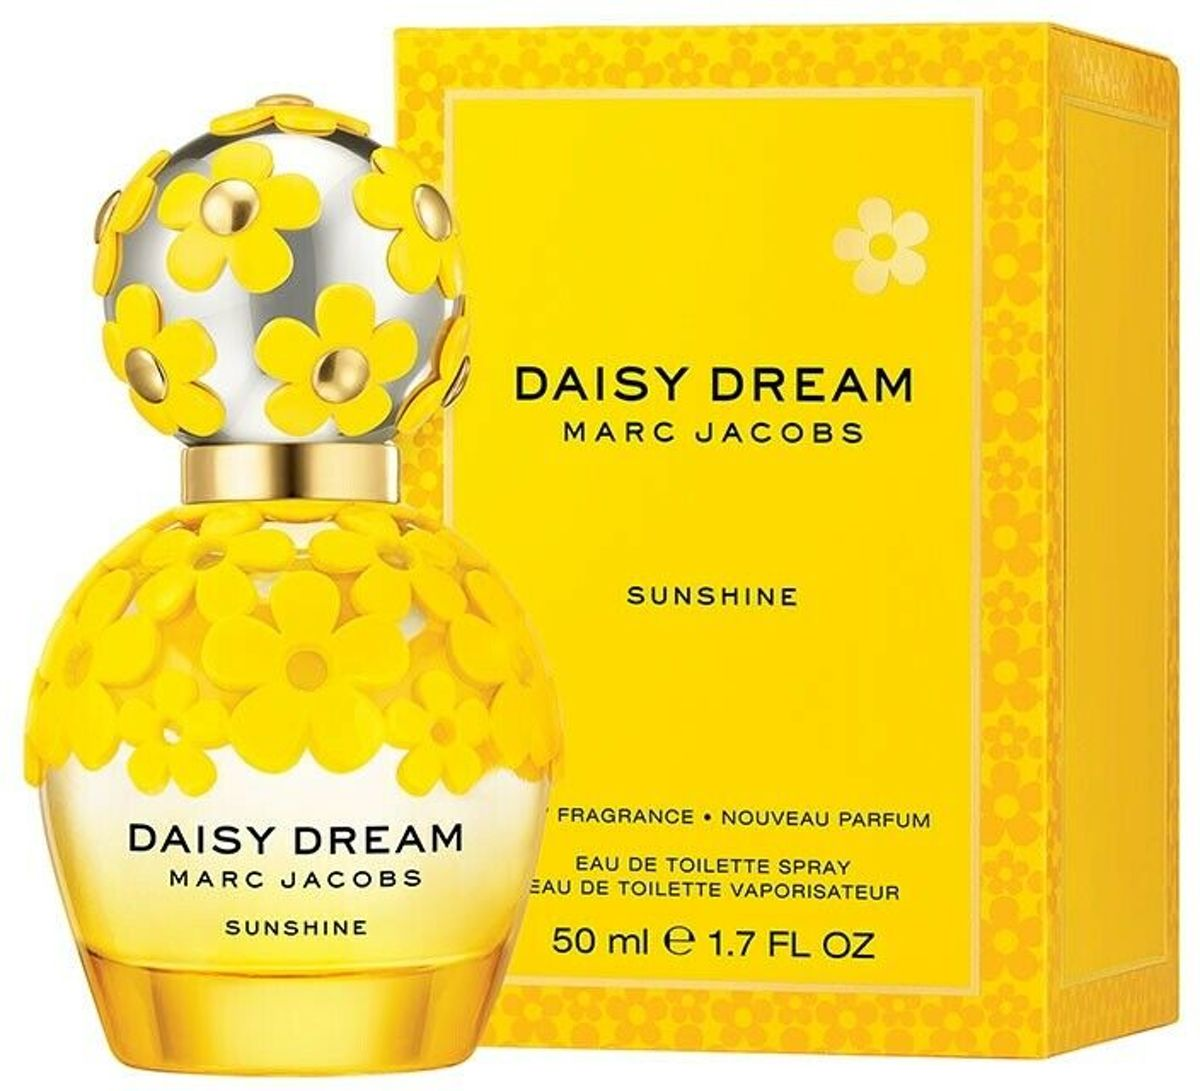 Marc Jacobs DAISY DREAM SUNSHINE edt spray 50 ml